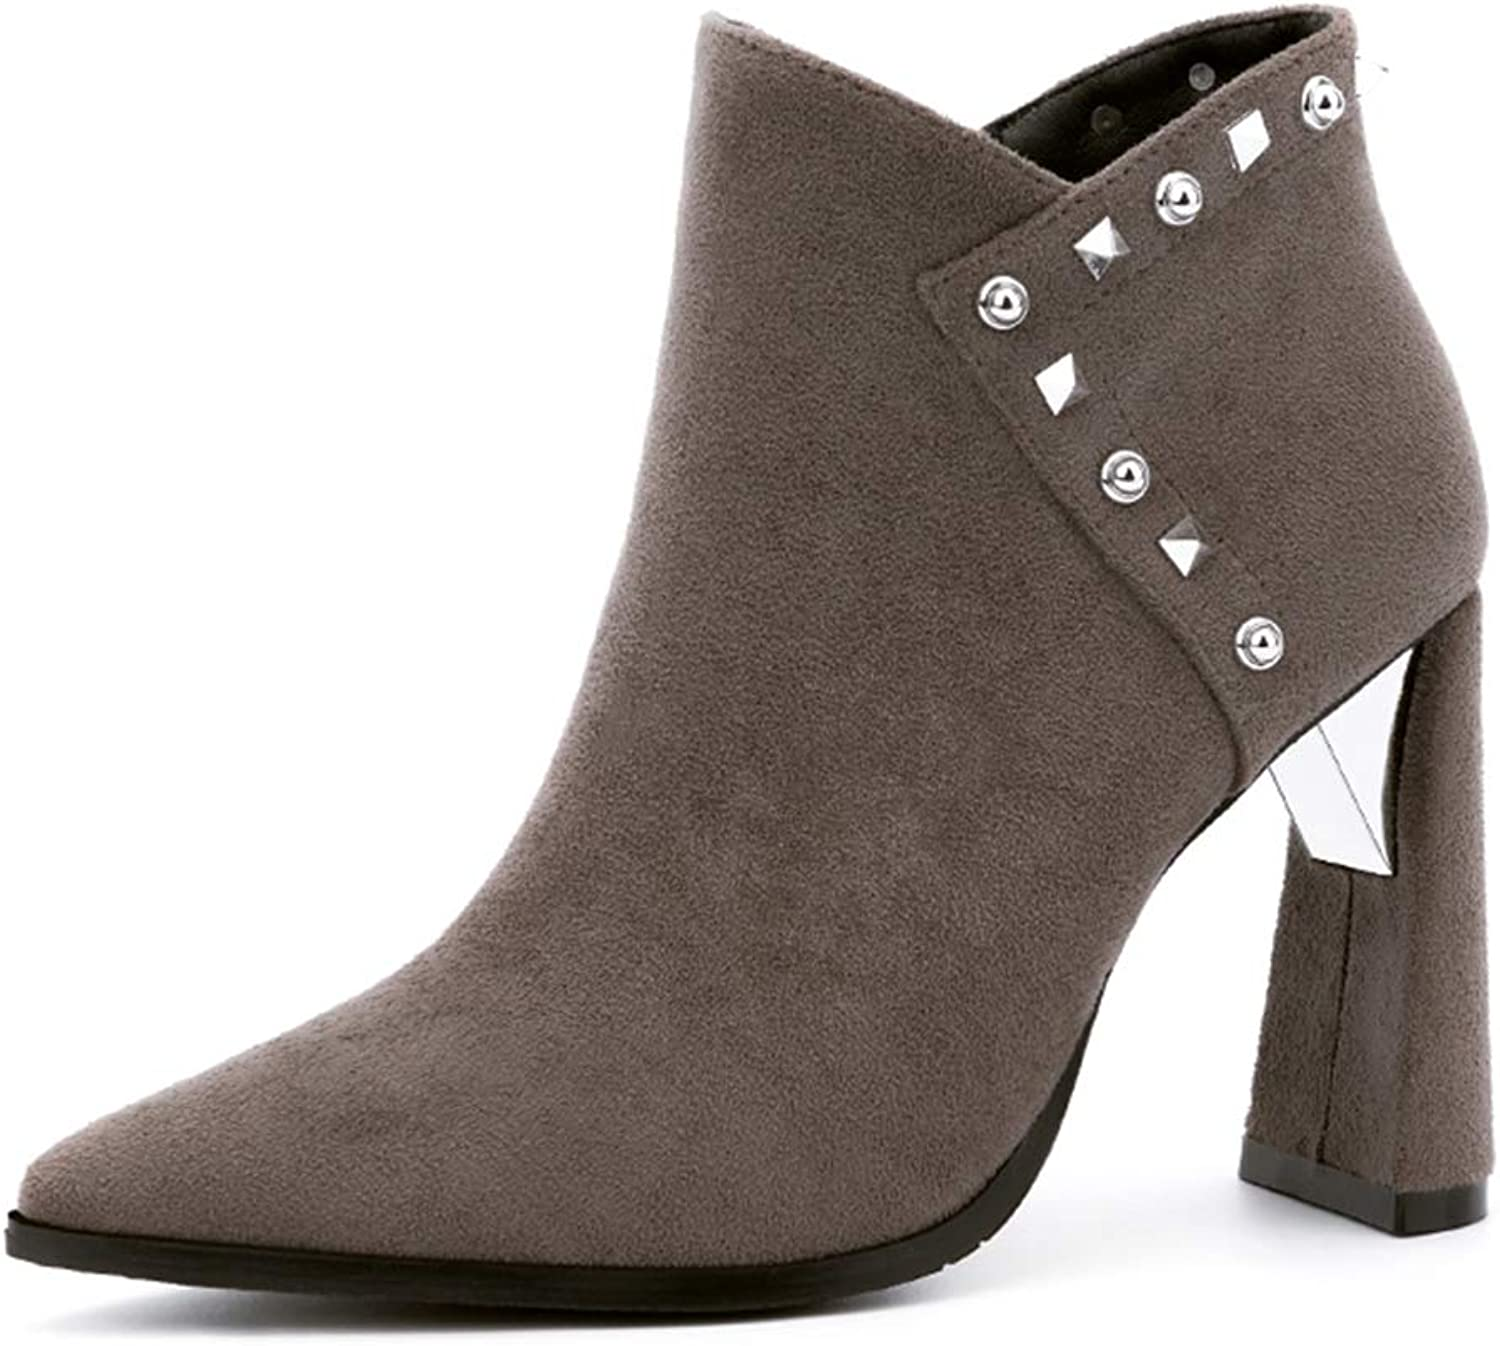 CYBLING Women Fashion High Heel Ankle Boots Rivets Pointed Toe Side Zipper Winter Warm Short Booties